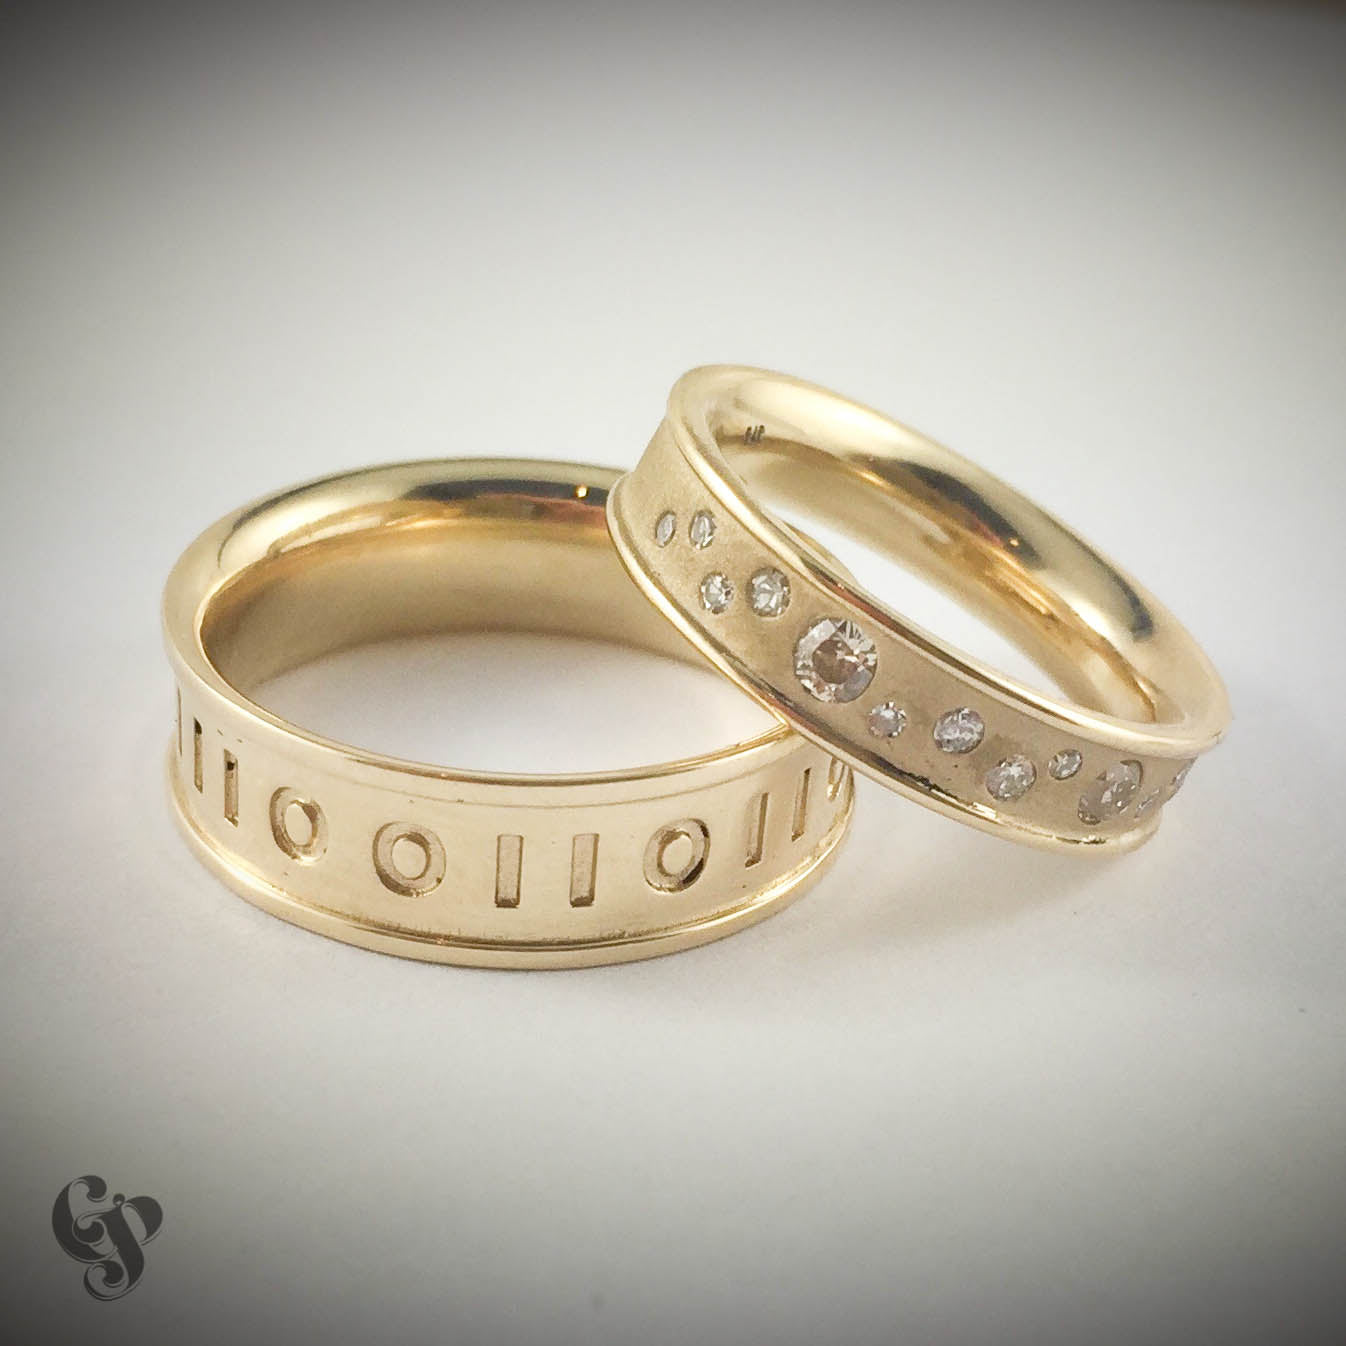 Recycled Yellow Gold and Diamonds Wedding Ring pair with Binary Code